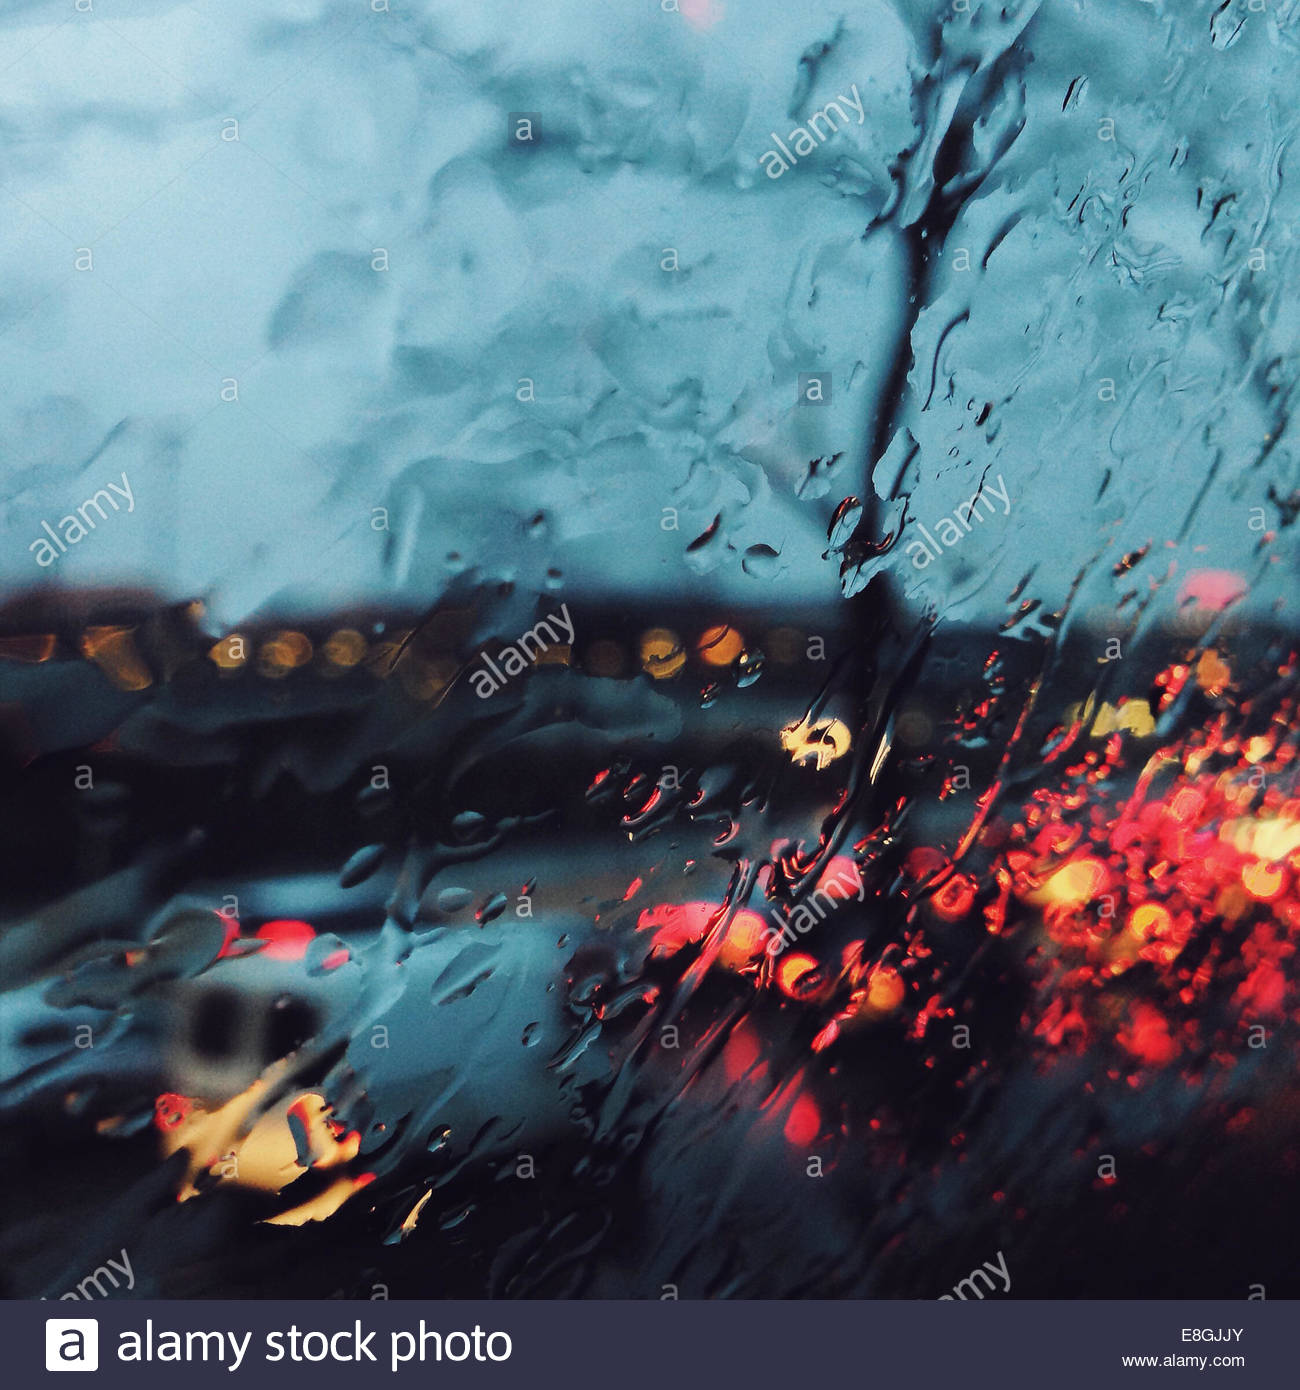 Rain streaked window with street view - Stock Image